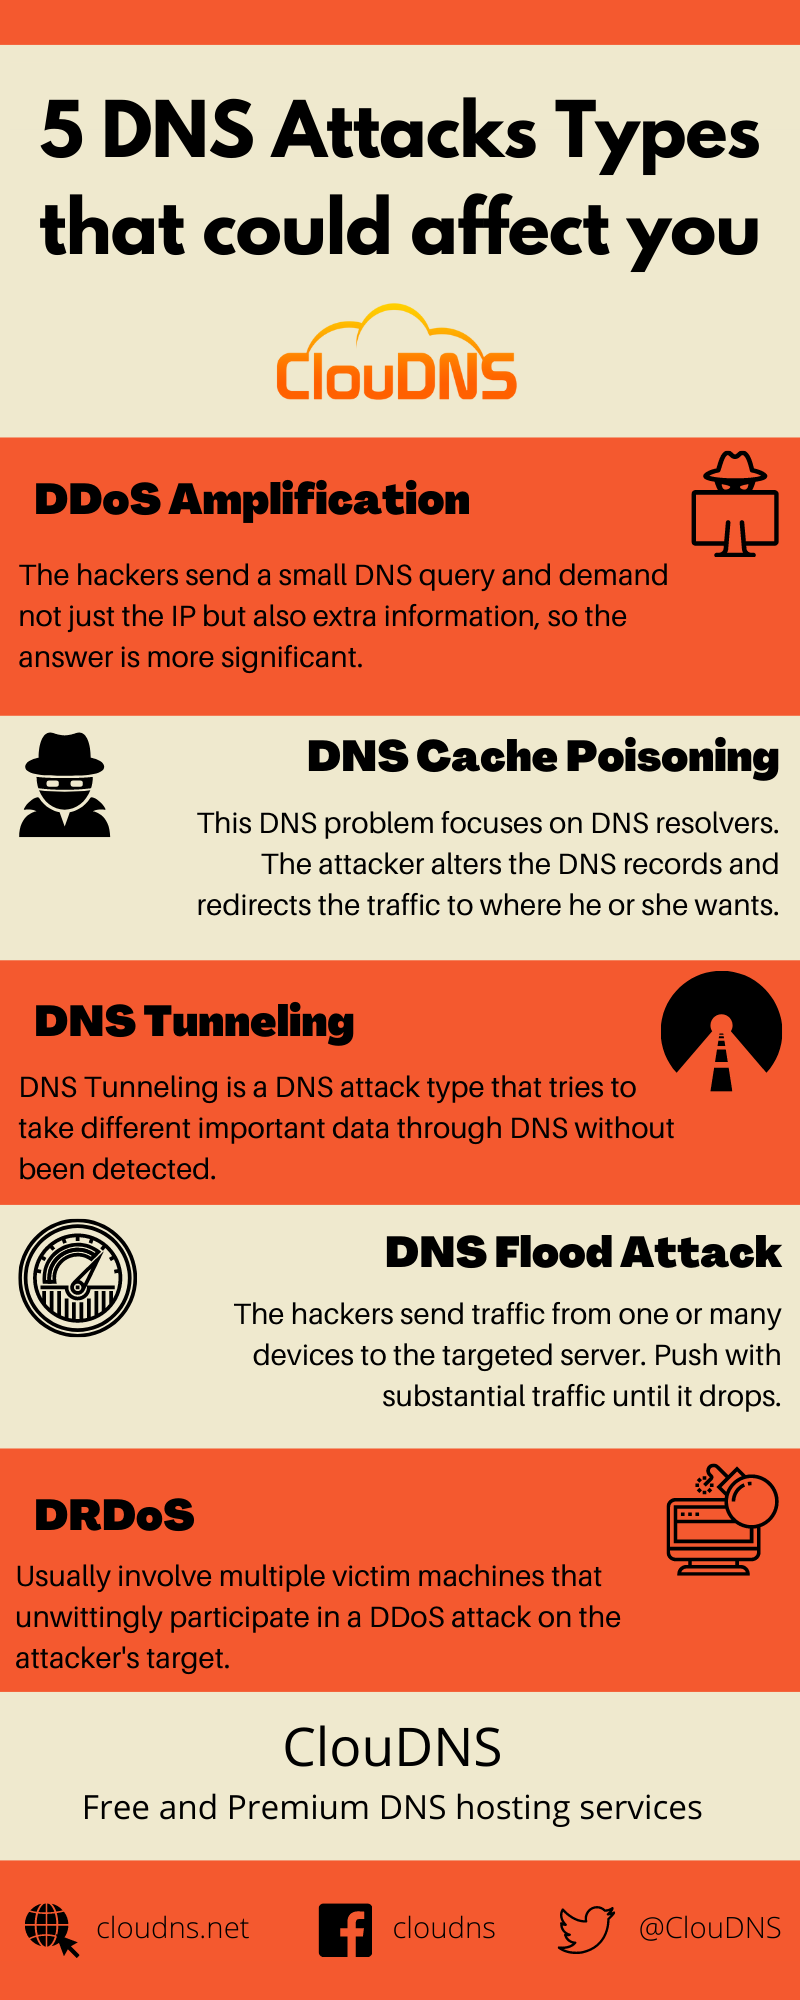 Infographic - 5 DNS attack types that could affect you